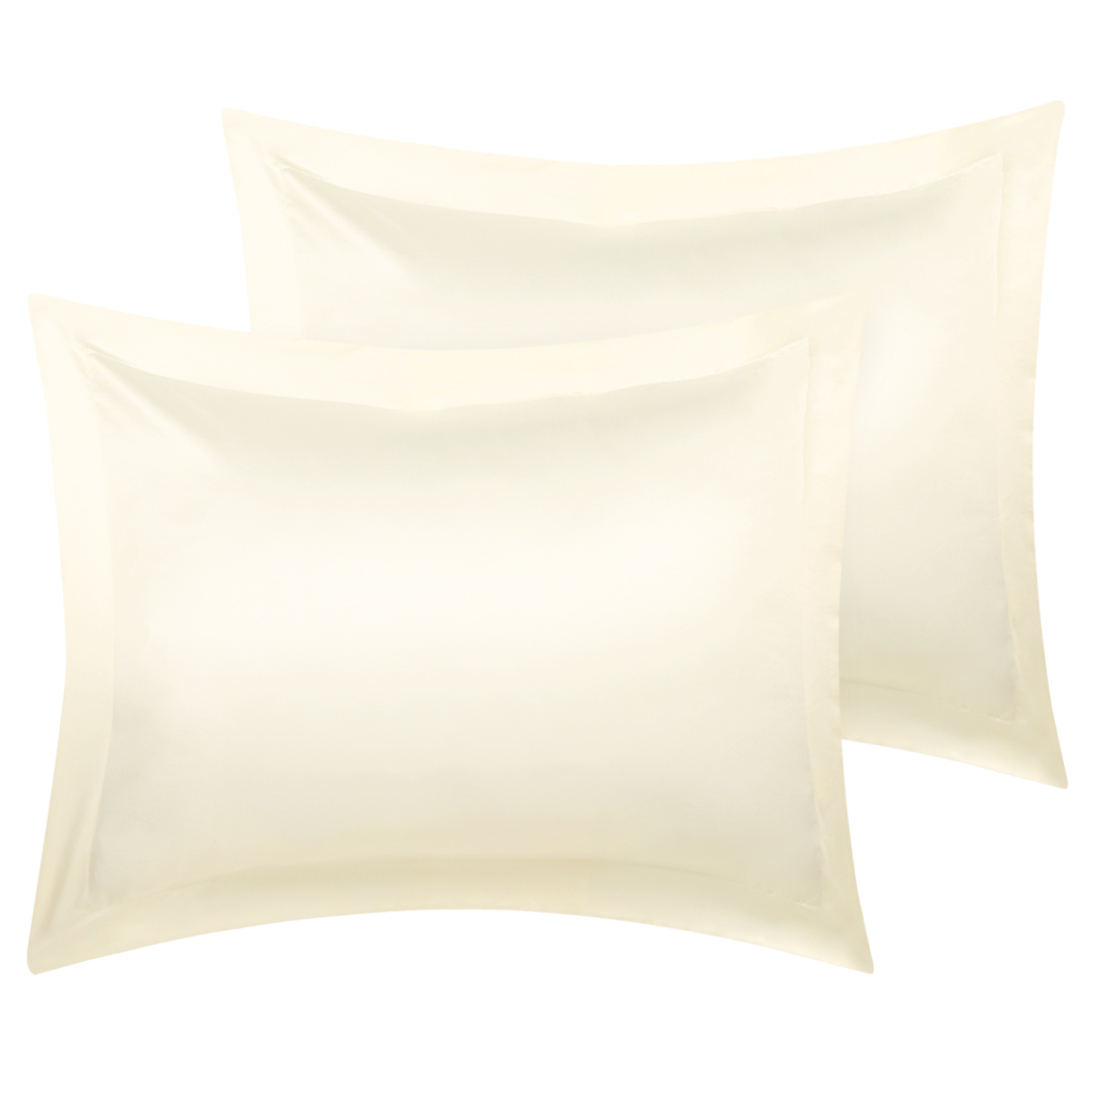 2 Pcs Cream Pillow Shams Satin Pillow Cases Boudoir Oxford Pillowcases